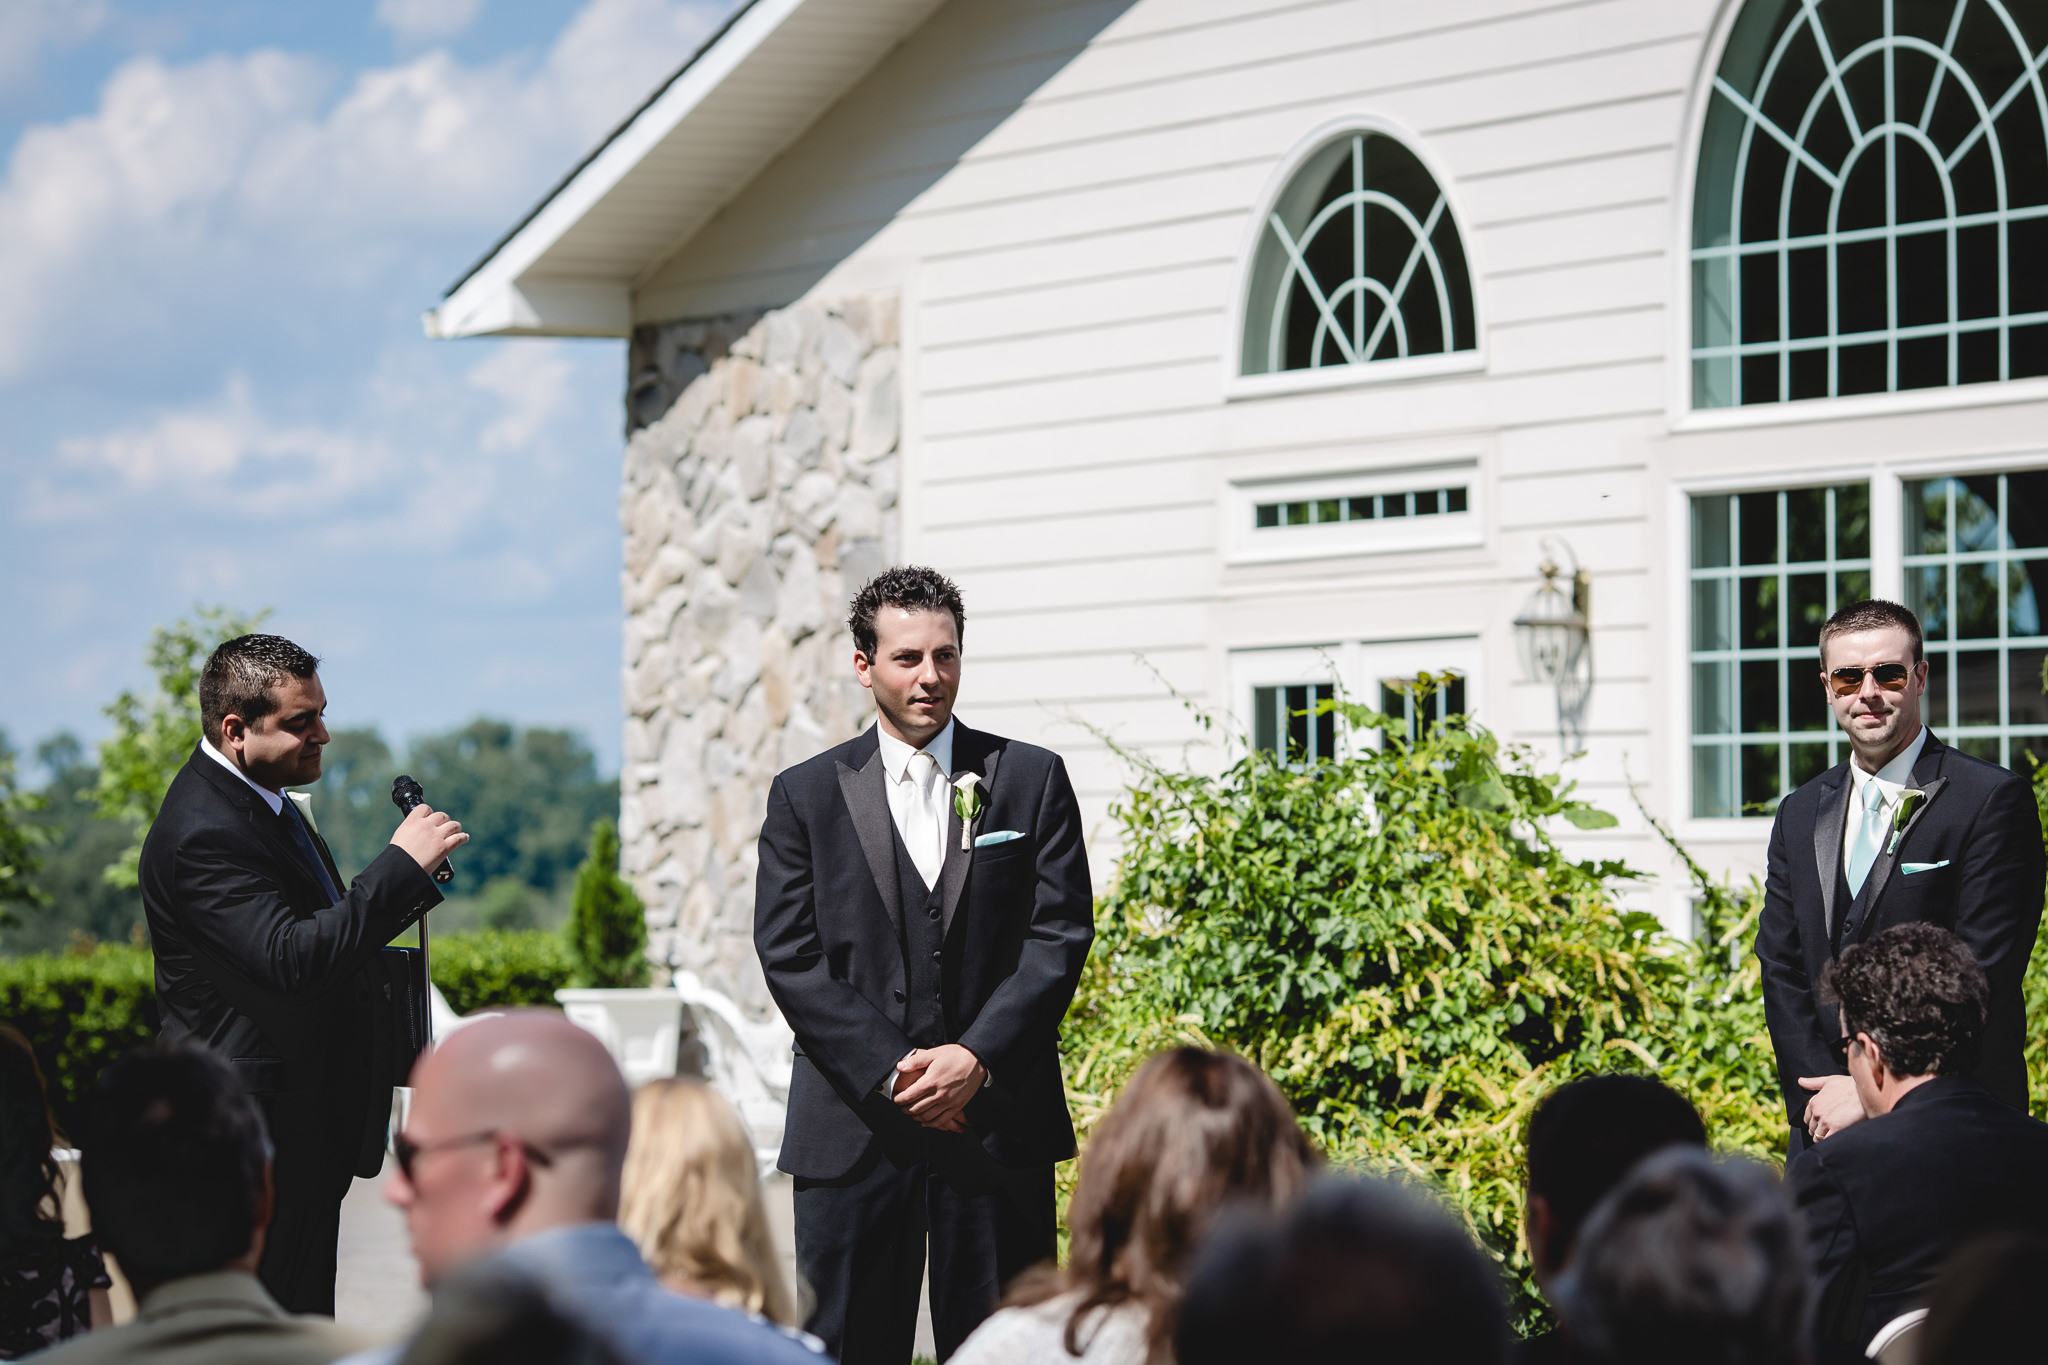 Groom watches his bride walking down the aisle at a wedding ceremony at Greystone Fields